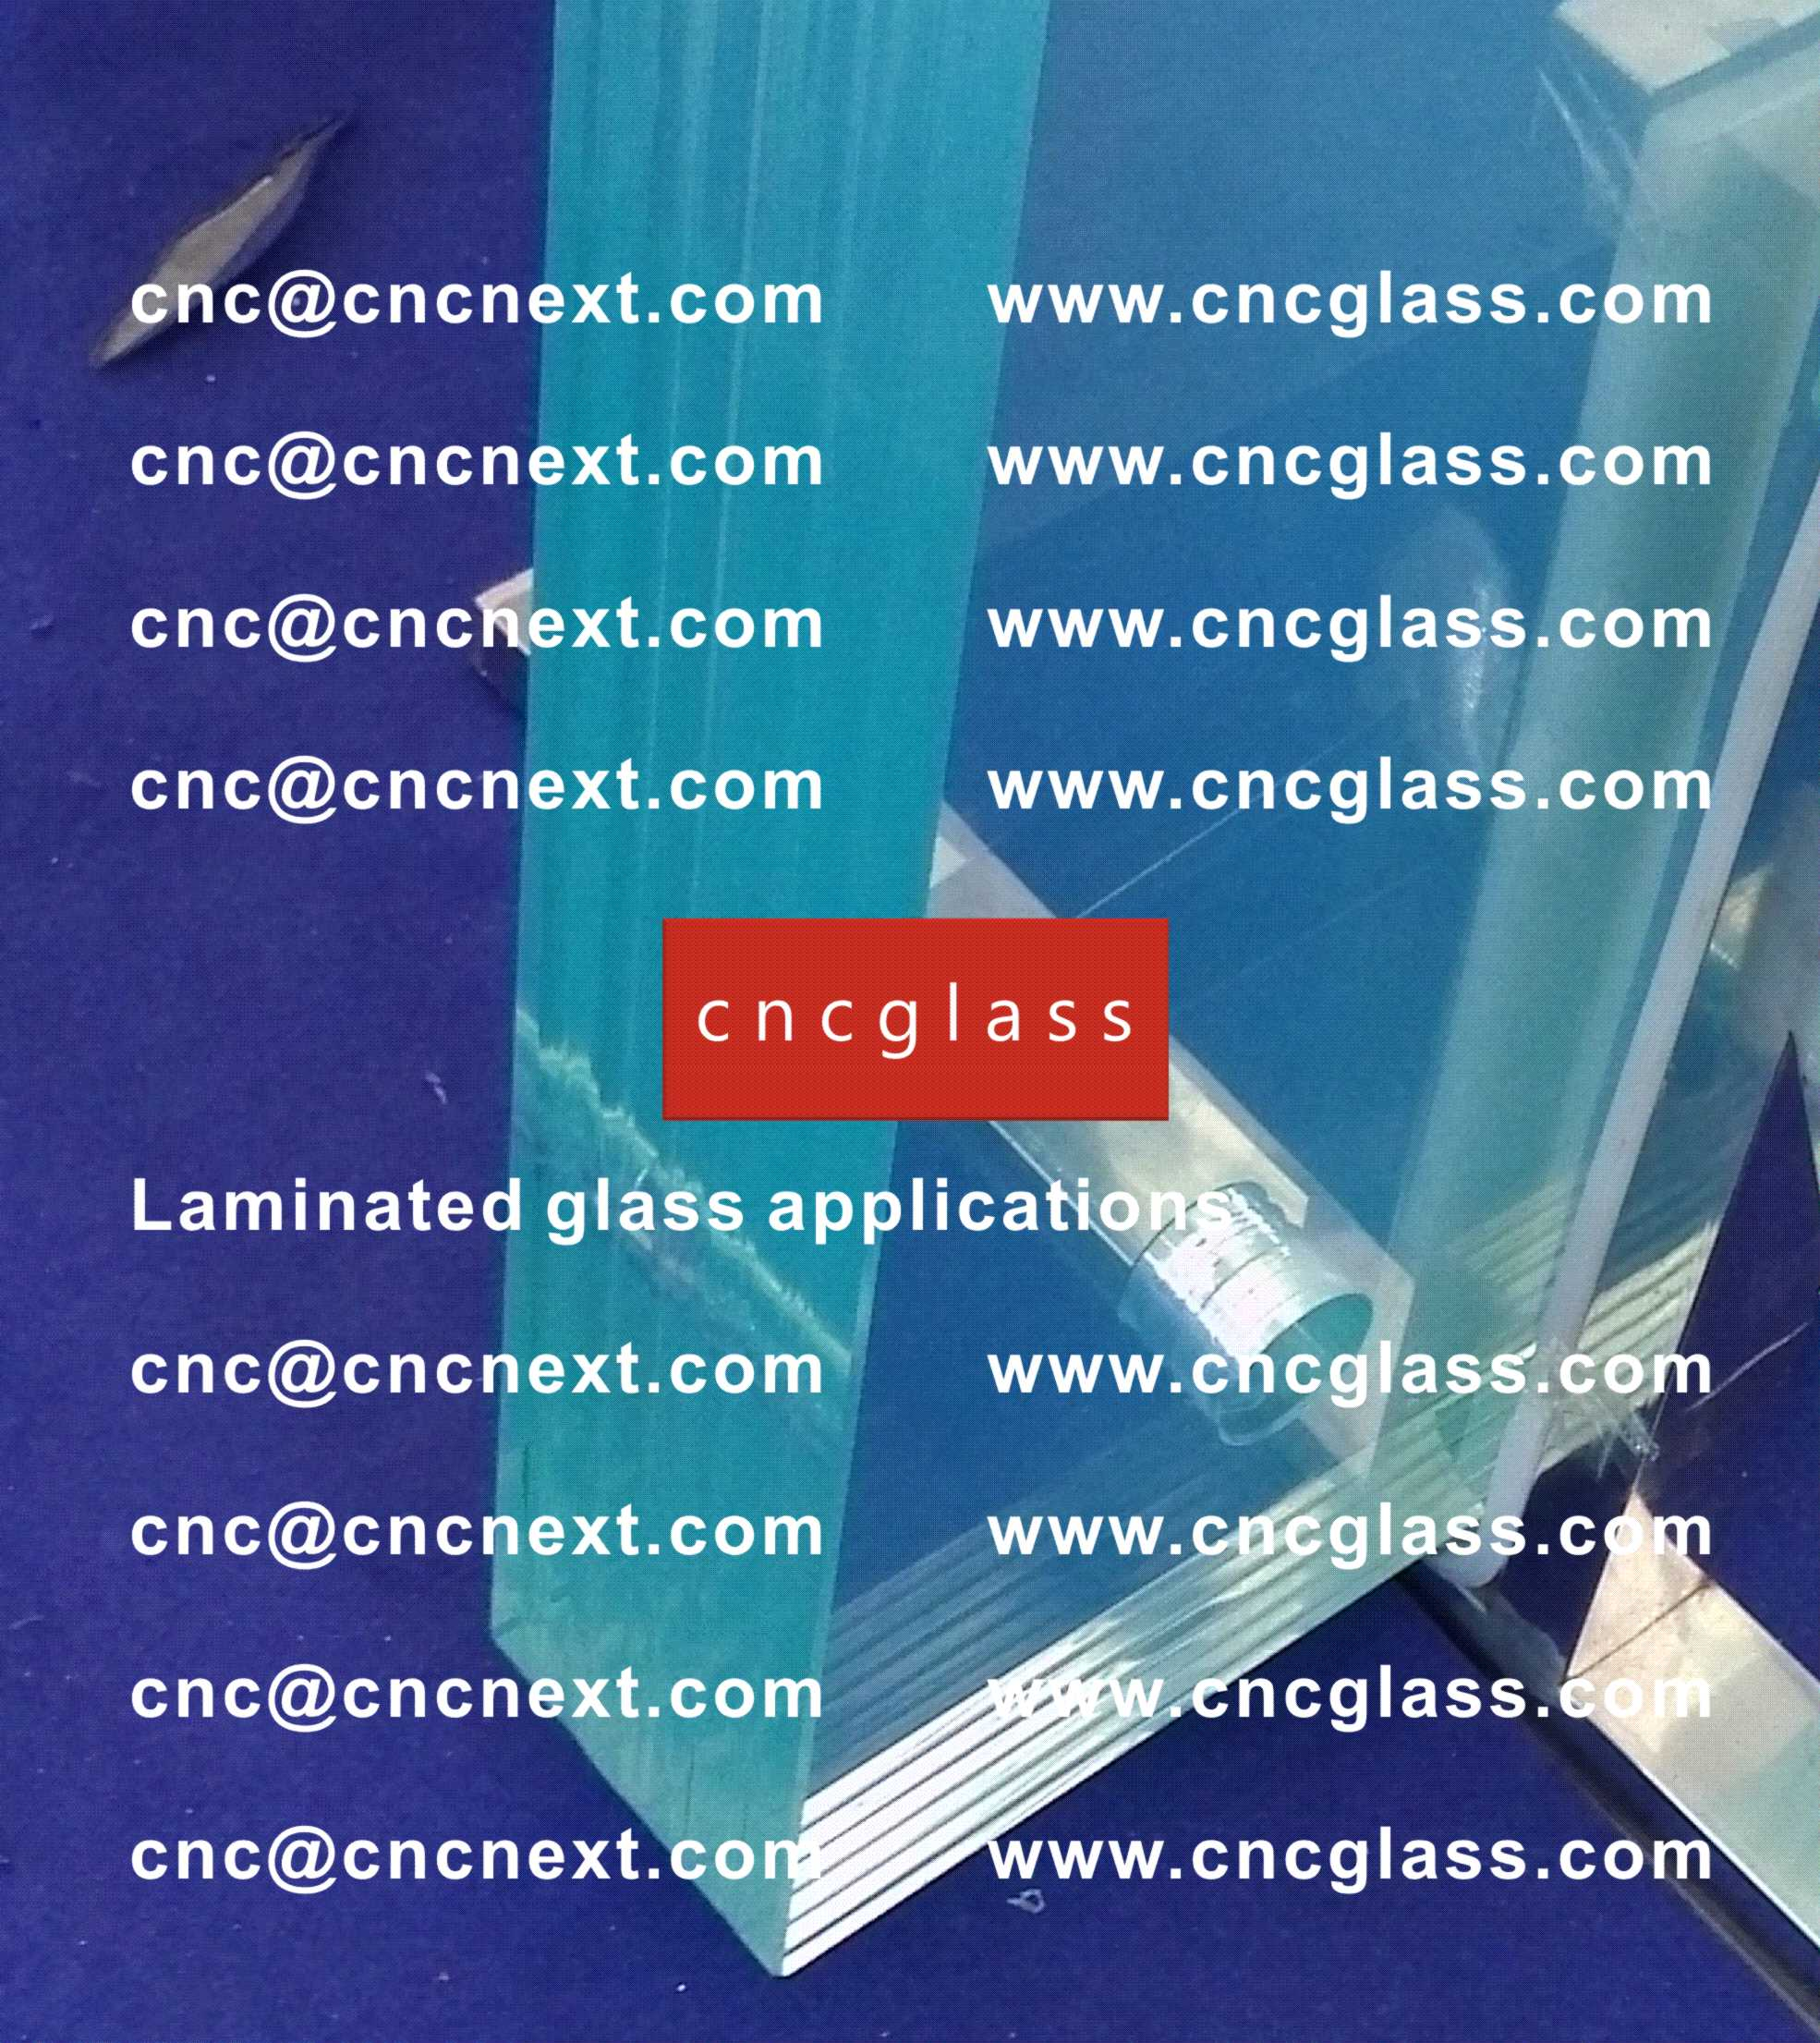 010 EVAFORCE LAMINATED GLASS